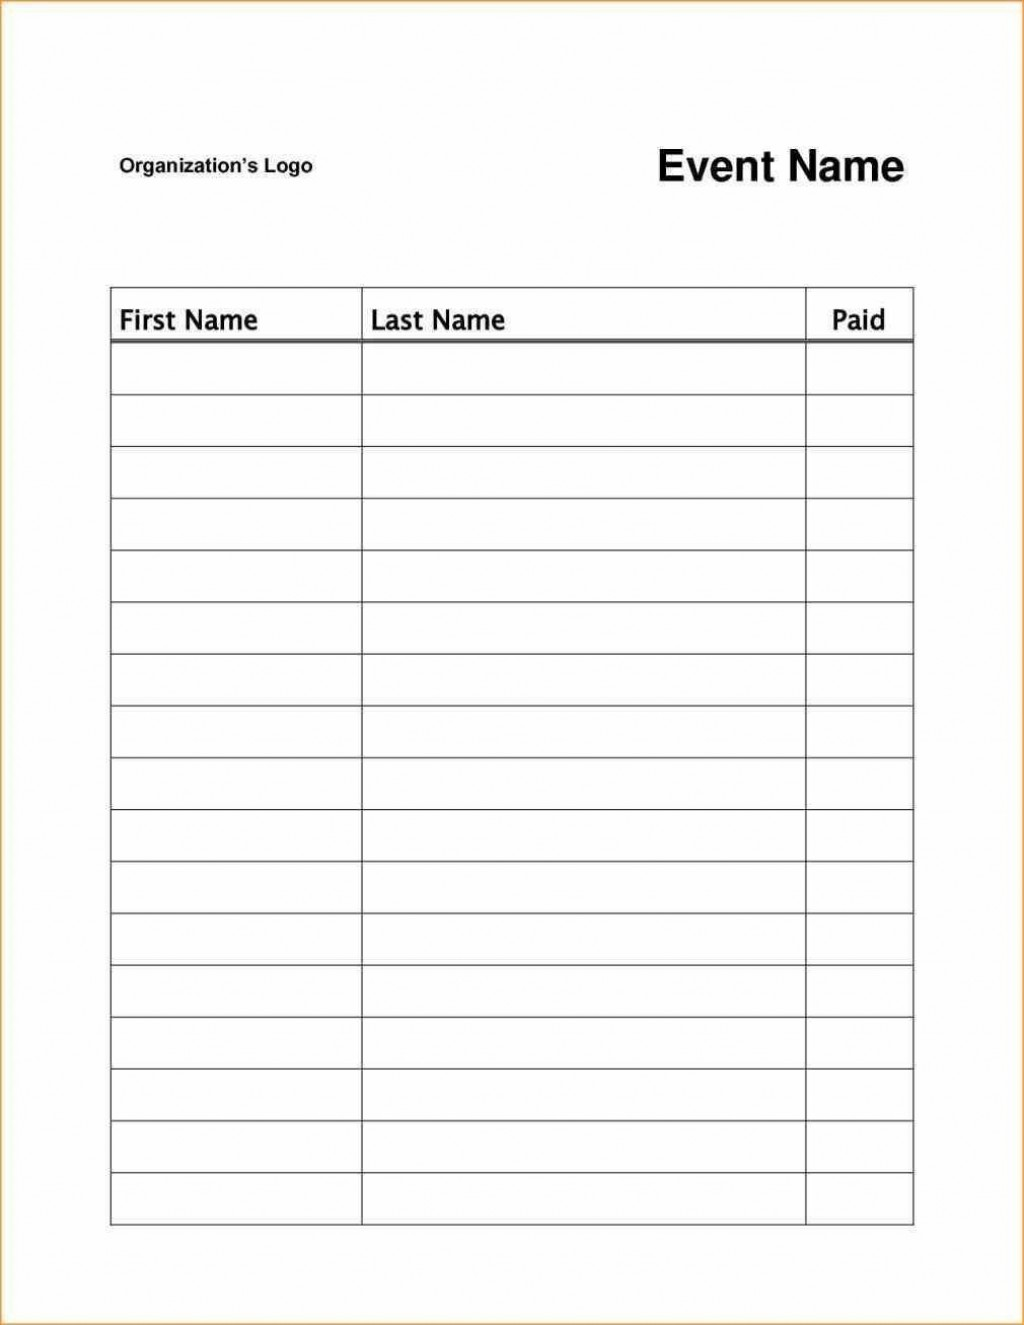 003 Breathtaking Pdf Sign Up Sheet Template High Resolution  TemplatesLarge